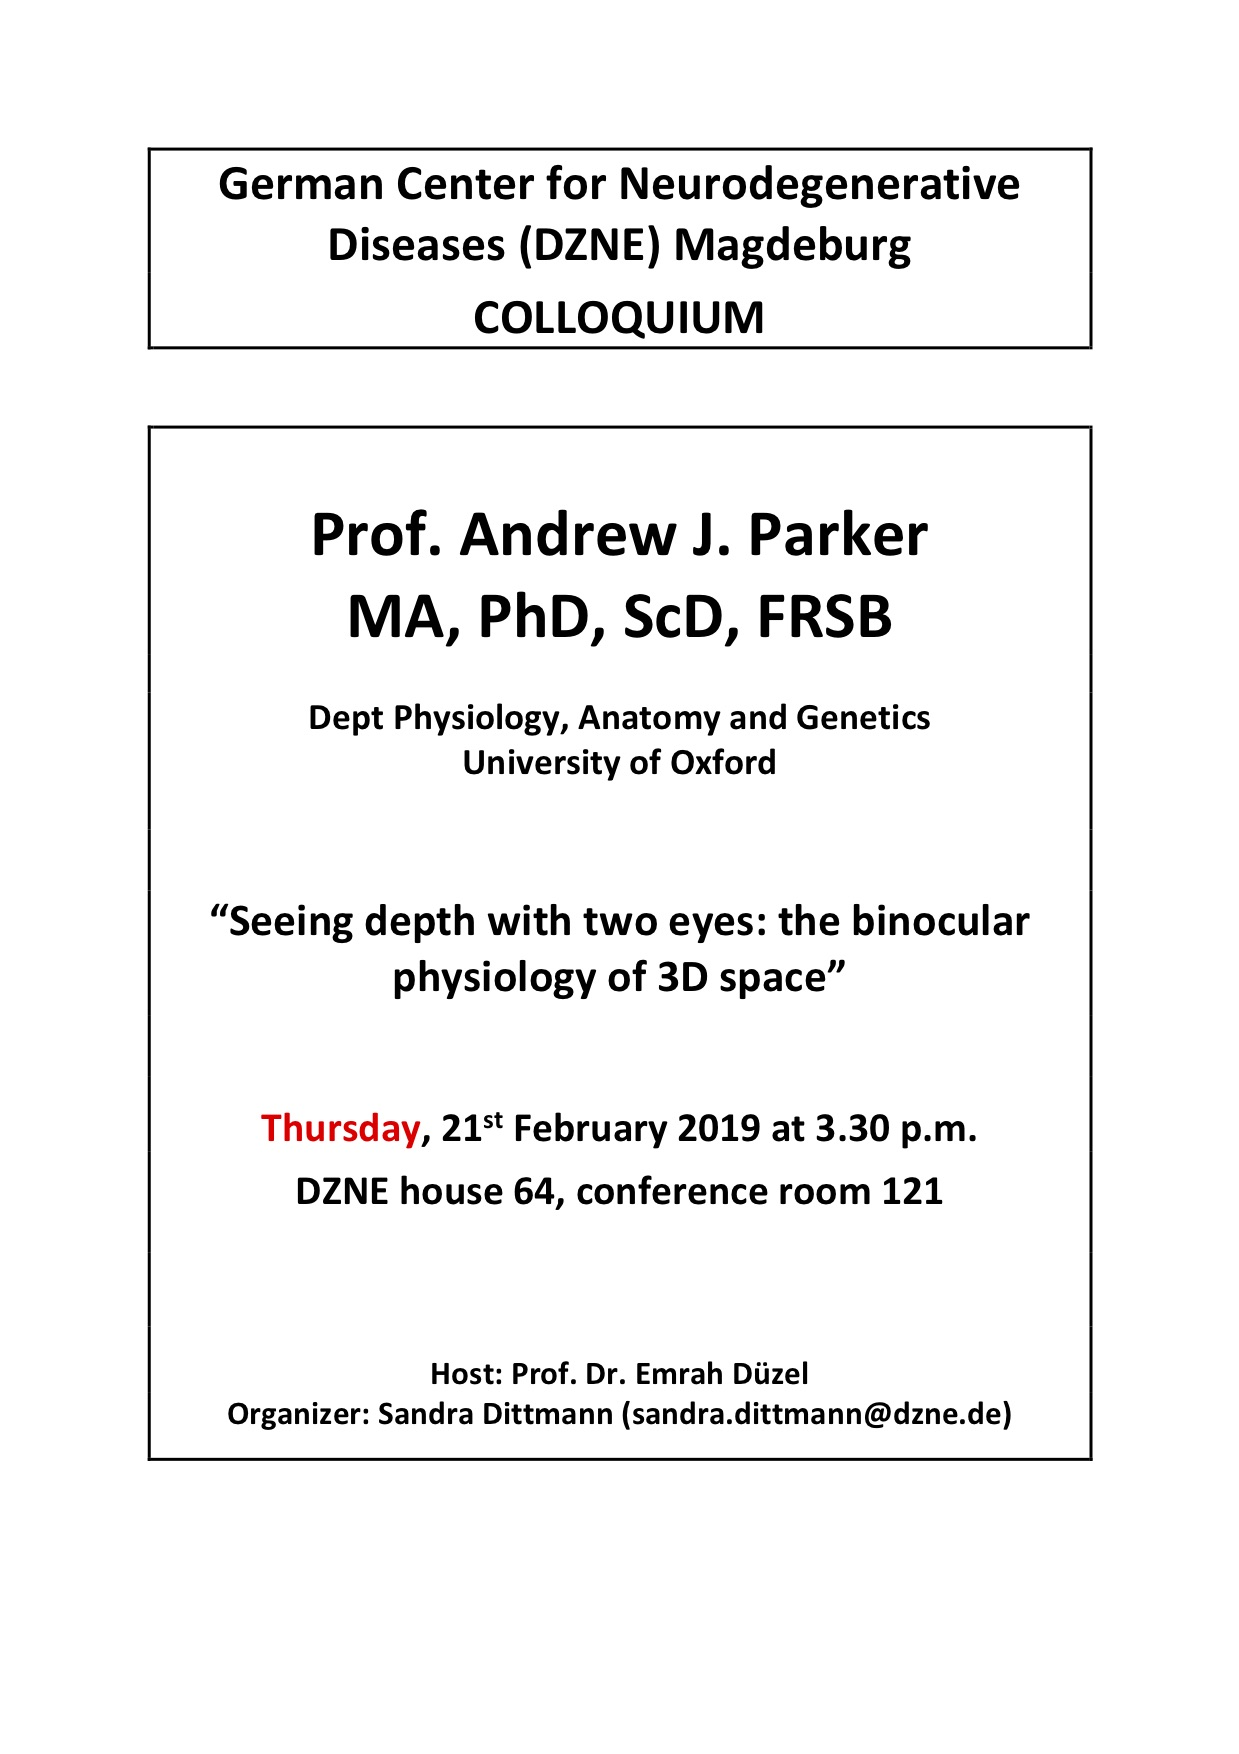 """DZNE Colloquium: """"Seeing depth with two eyes: the binocular physiology of 3D space"""" @ DZNE, House 64, conference room 121"""